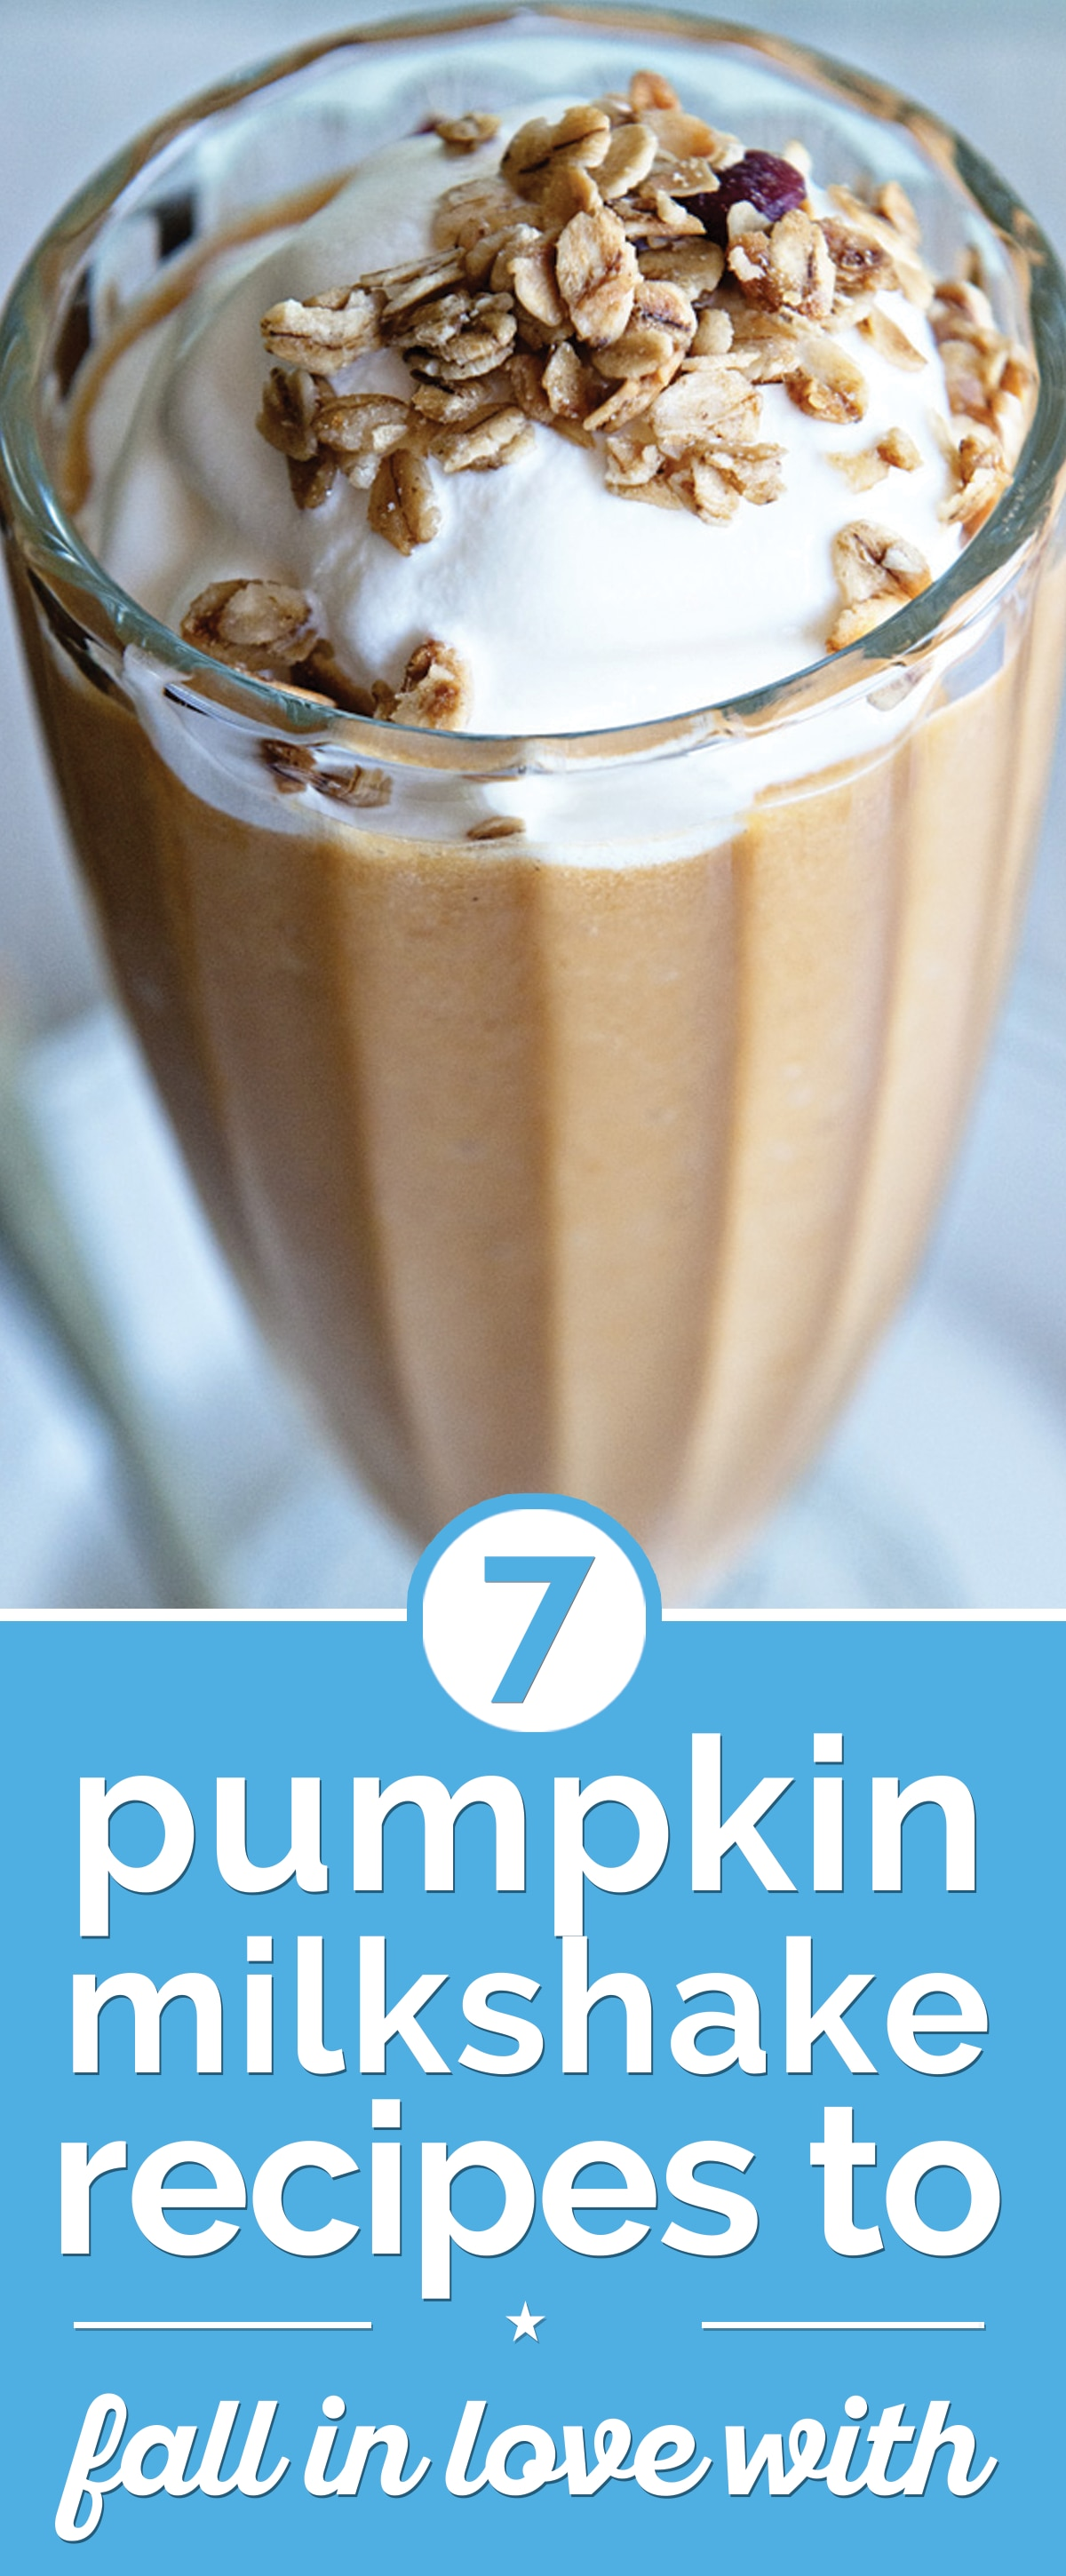 6 Pumpkin Milkshake Recipes to Fall In Love With | the good stuff